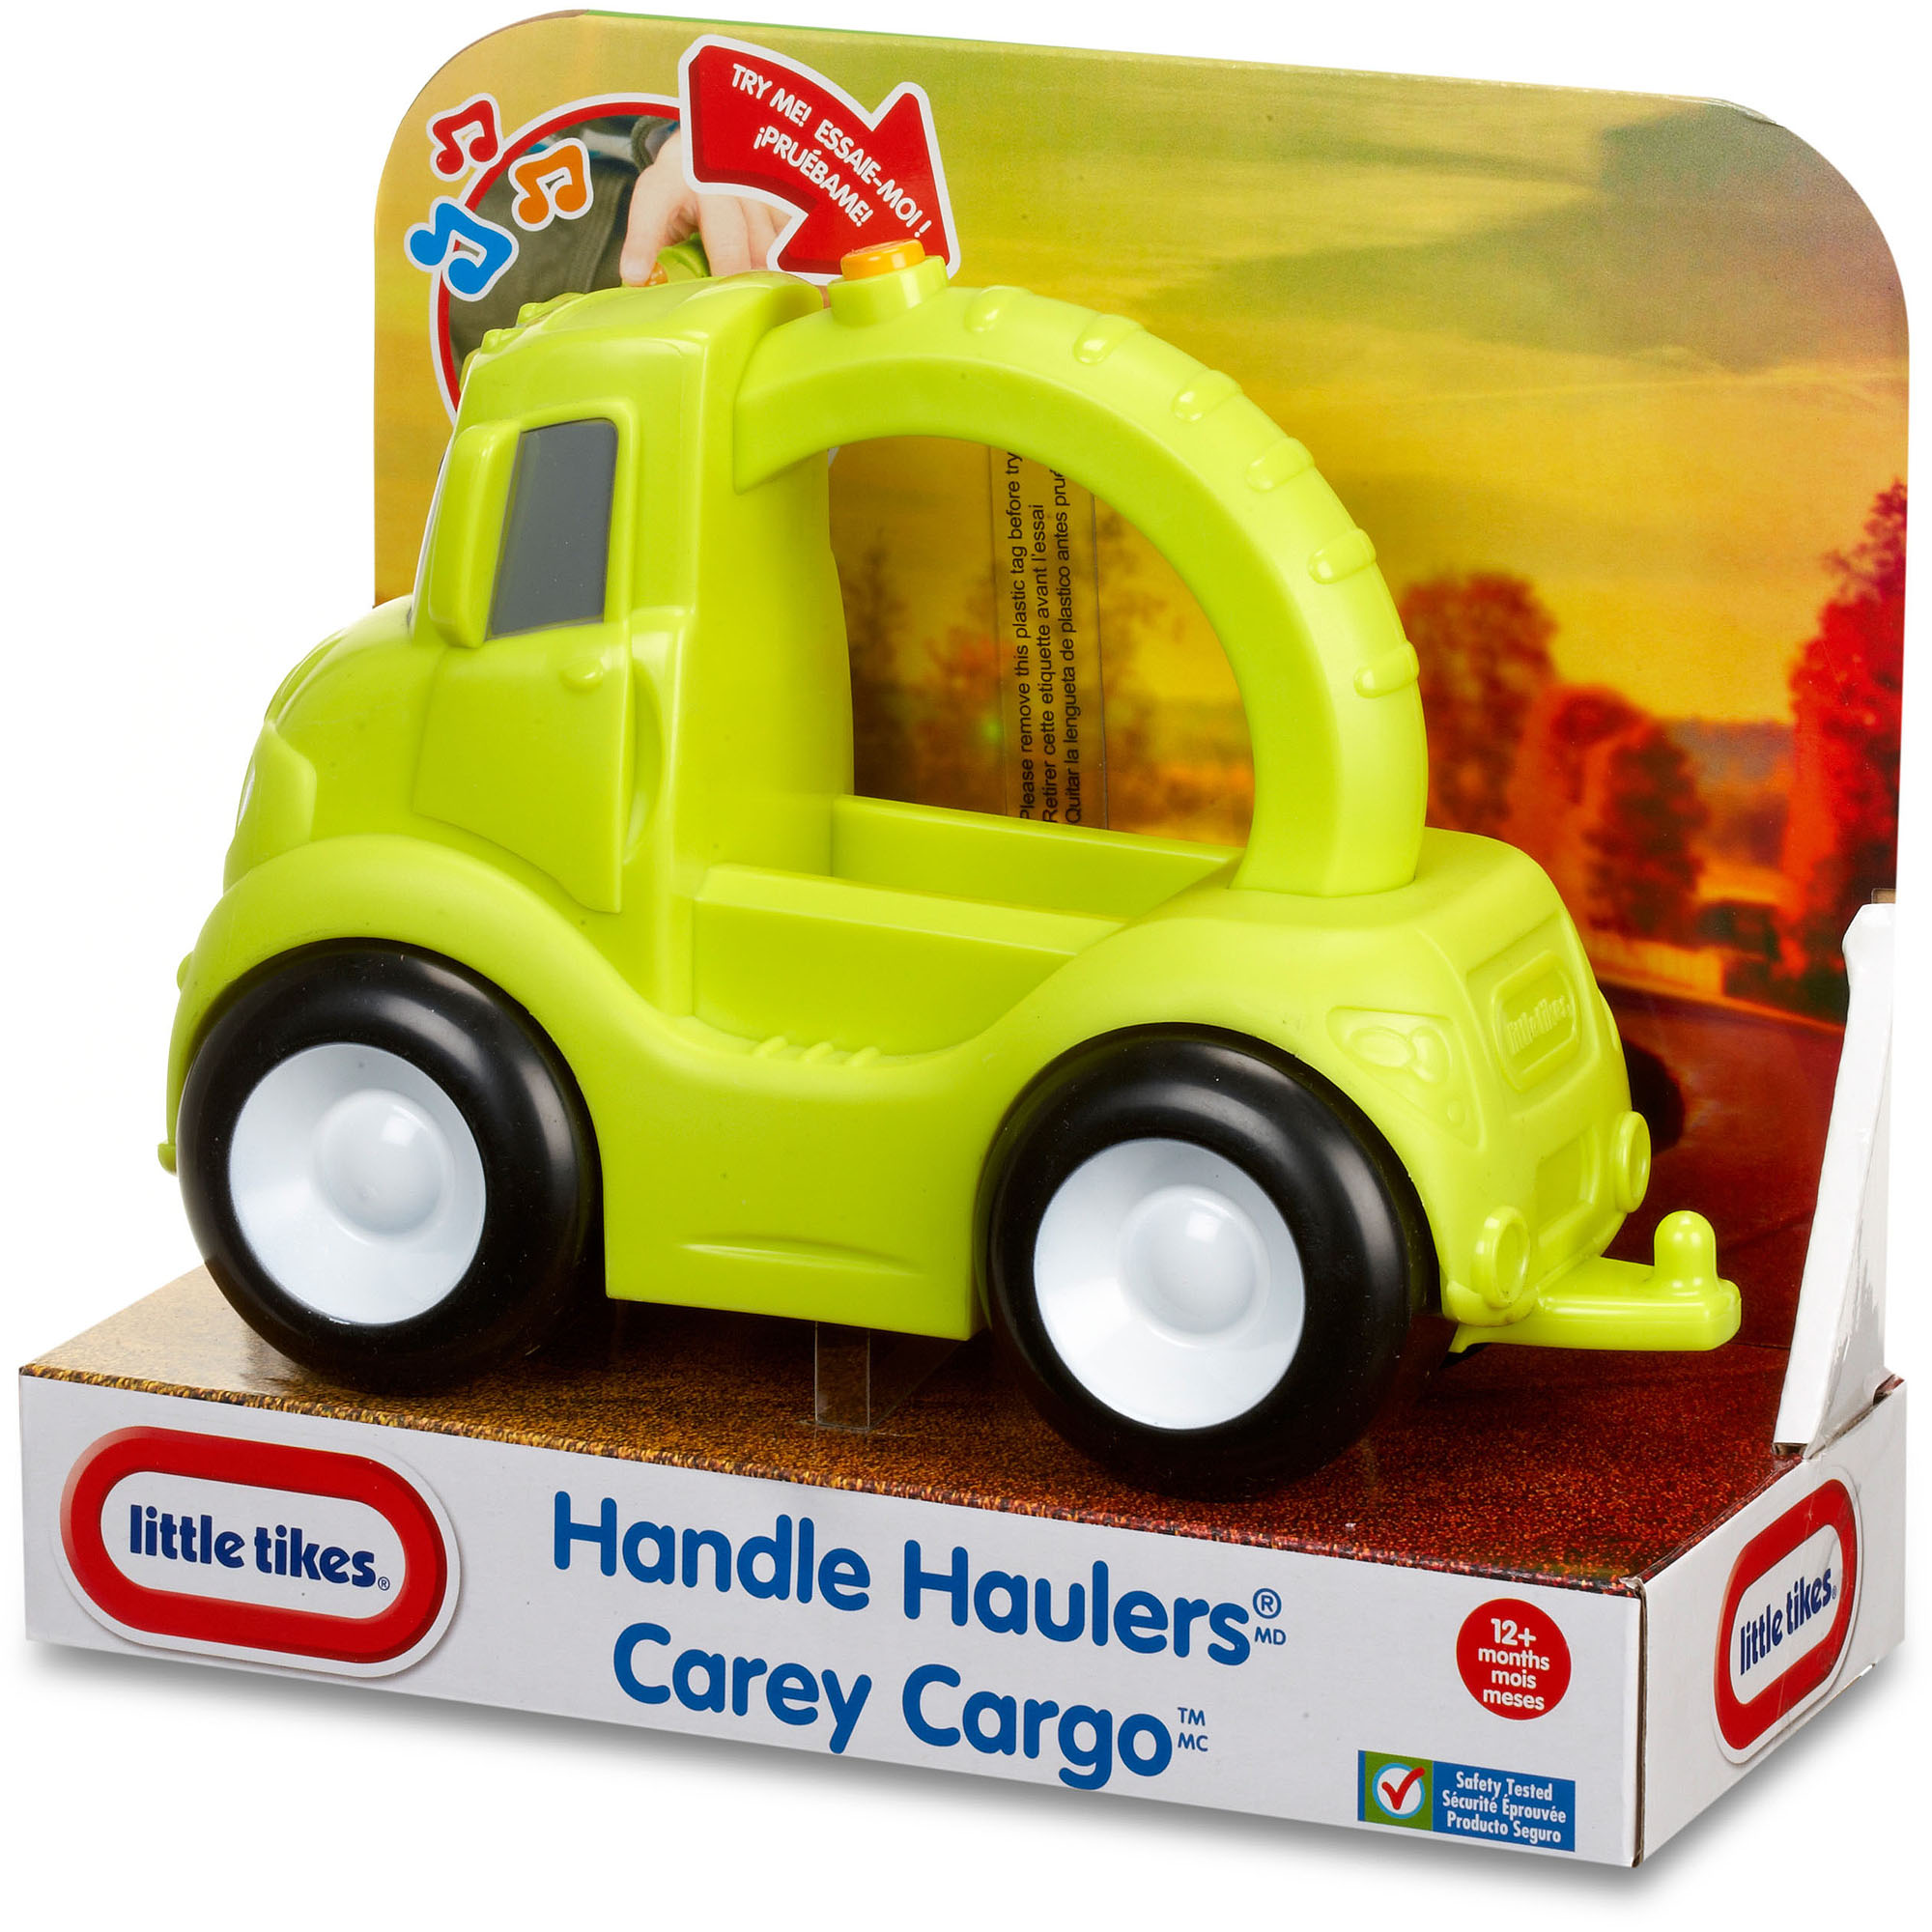 Little Tikes Handle Haulers, Carey Cargo by Little Tikes